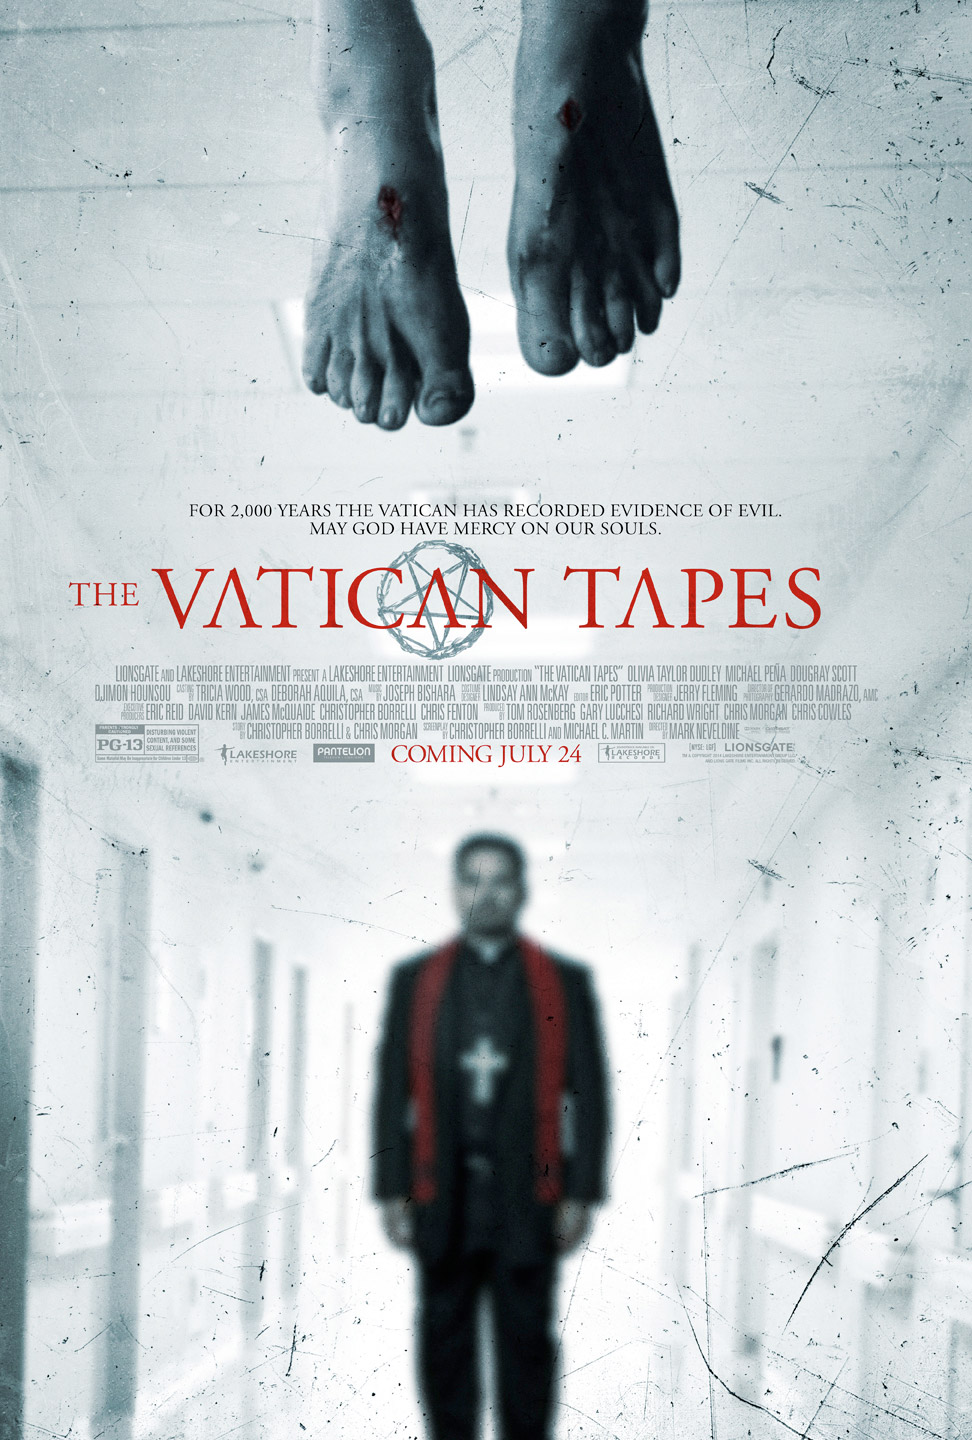 vatican tapes poster